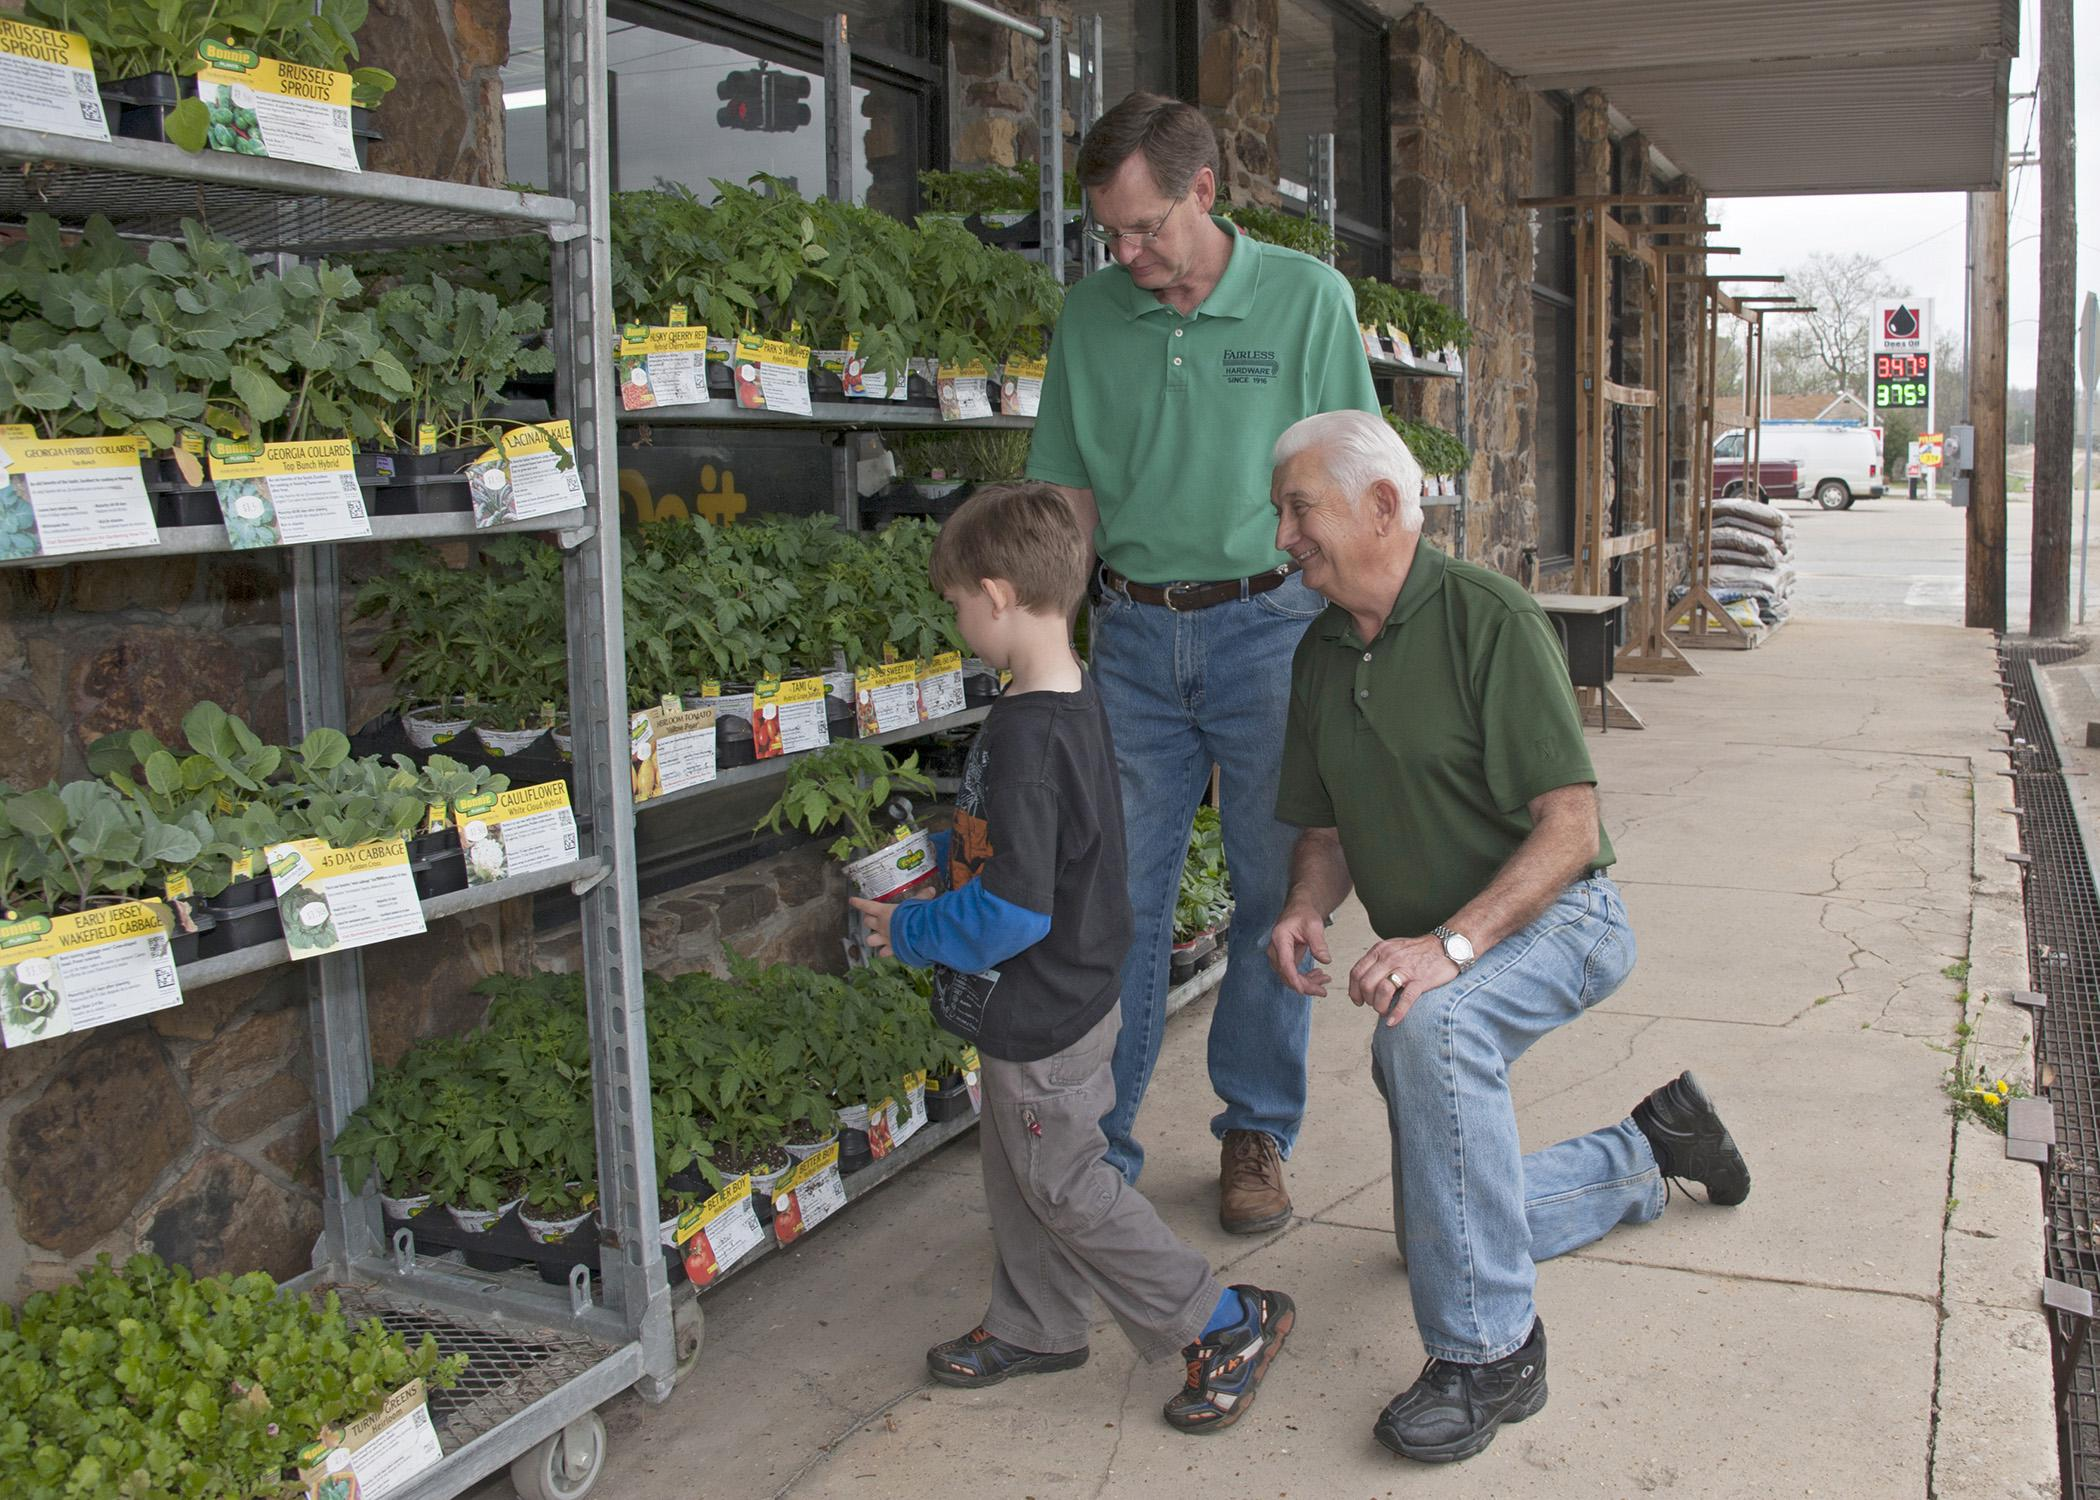 Jerry Don Keith, Tishomingo County Master Gardener, right, helps his grandson Brooks Keith select tomato plants from James Tennyson's inventory at Fairless Hardware Co. in Tishomingo on April 3, 2014. (Photo by MSU Ag Communications/Kat Lawrence)